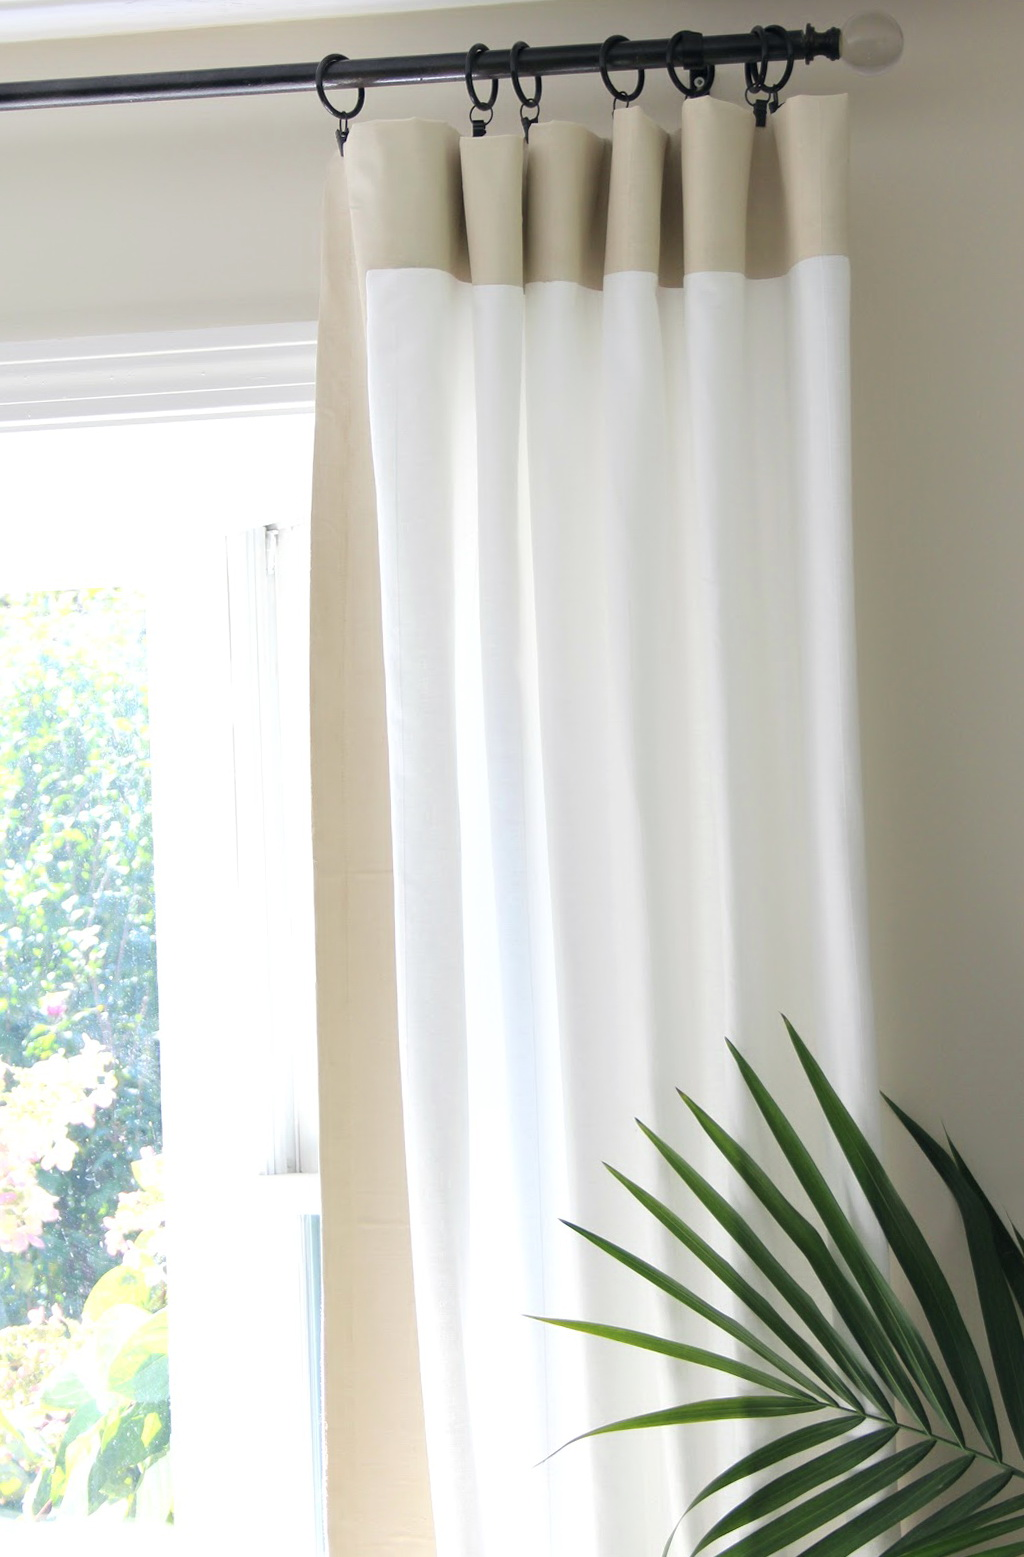 Large Wooden Curtain Rods Home Design Ideas